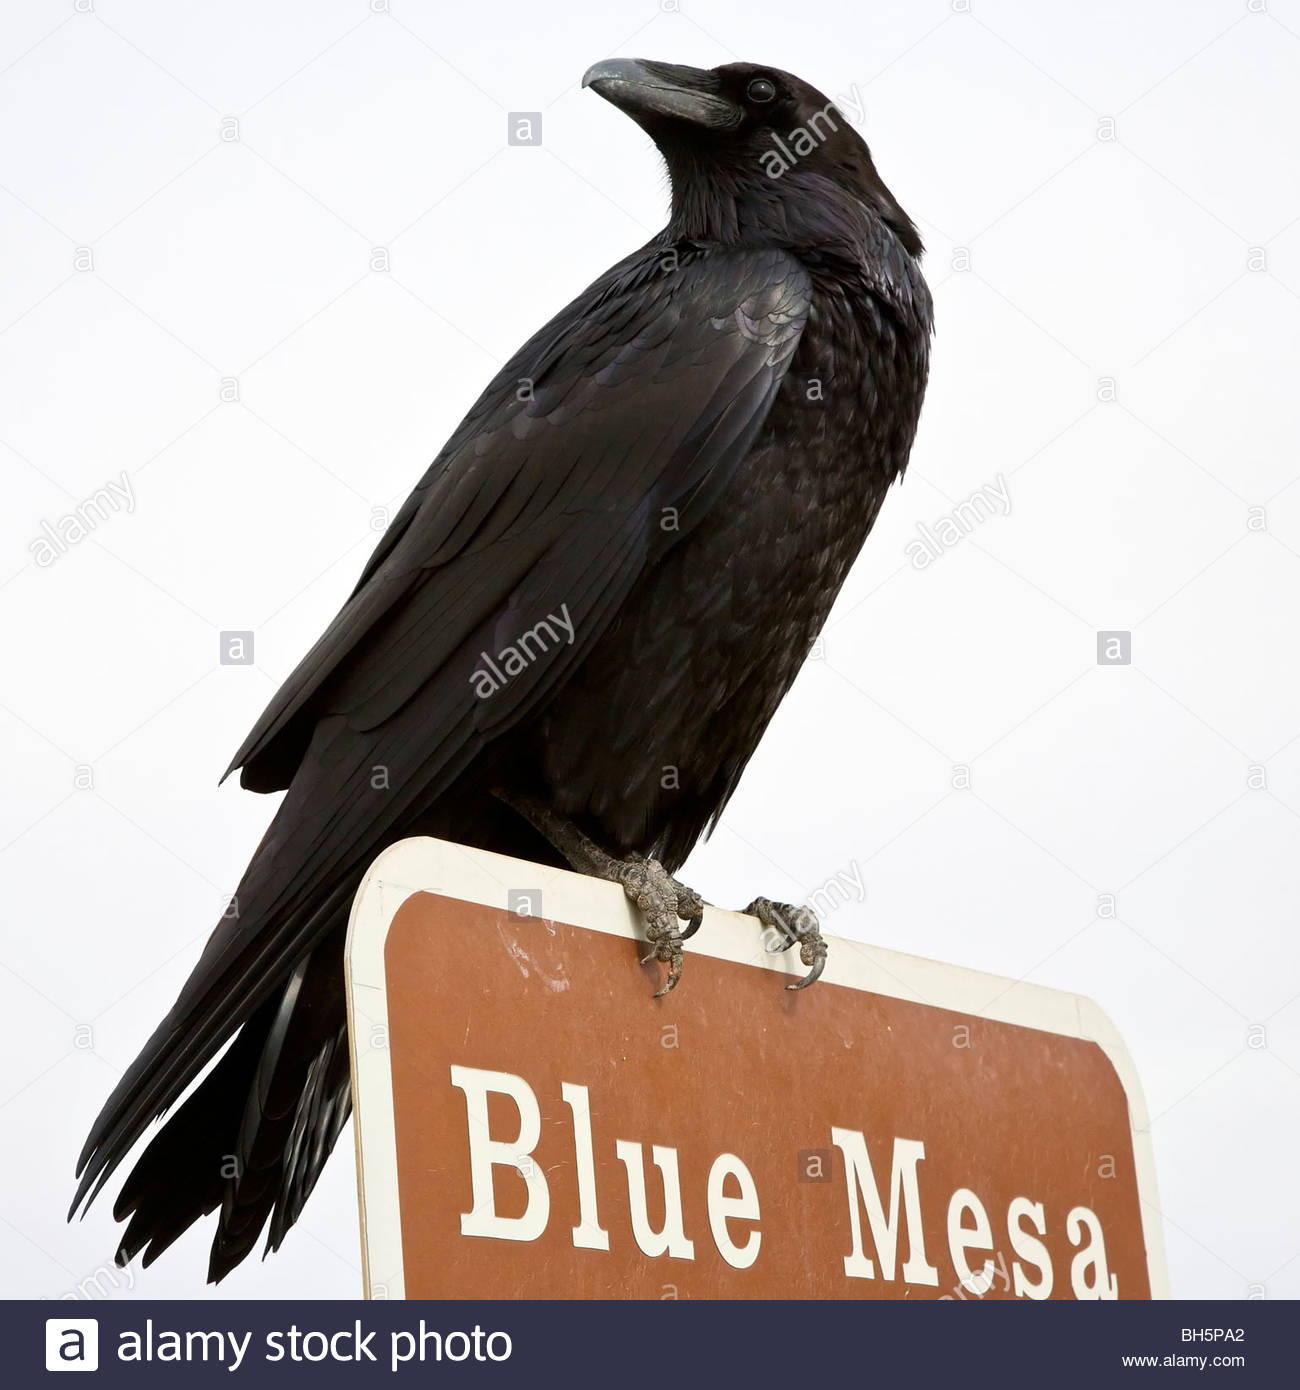 Common Raven (Corvus corax) perched on top of a sign post in the Pained Desert, Arizona. - Stock Image